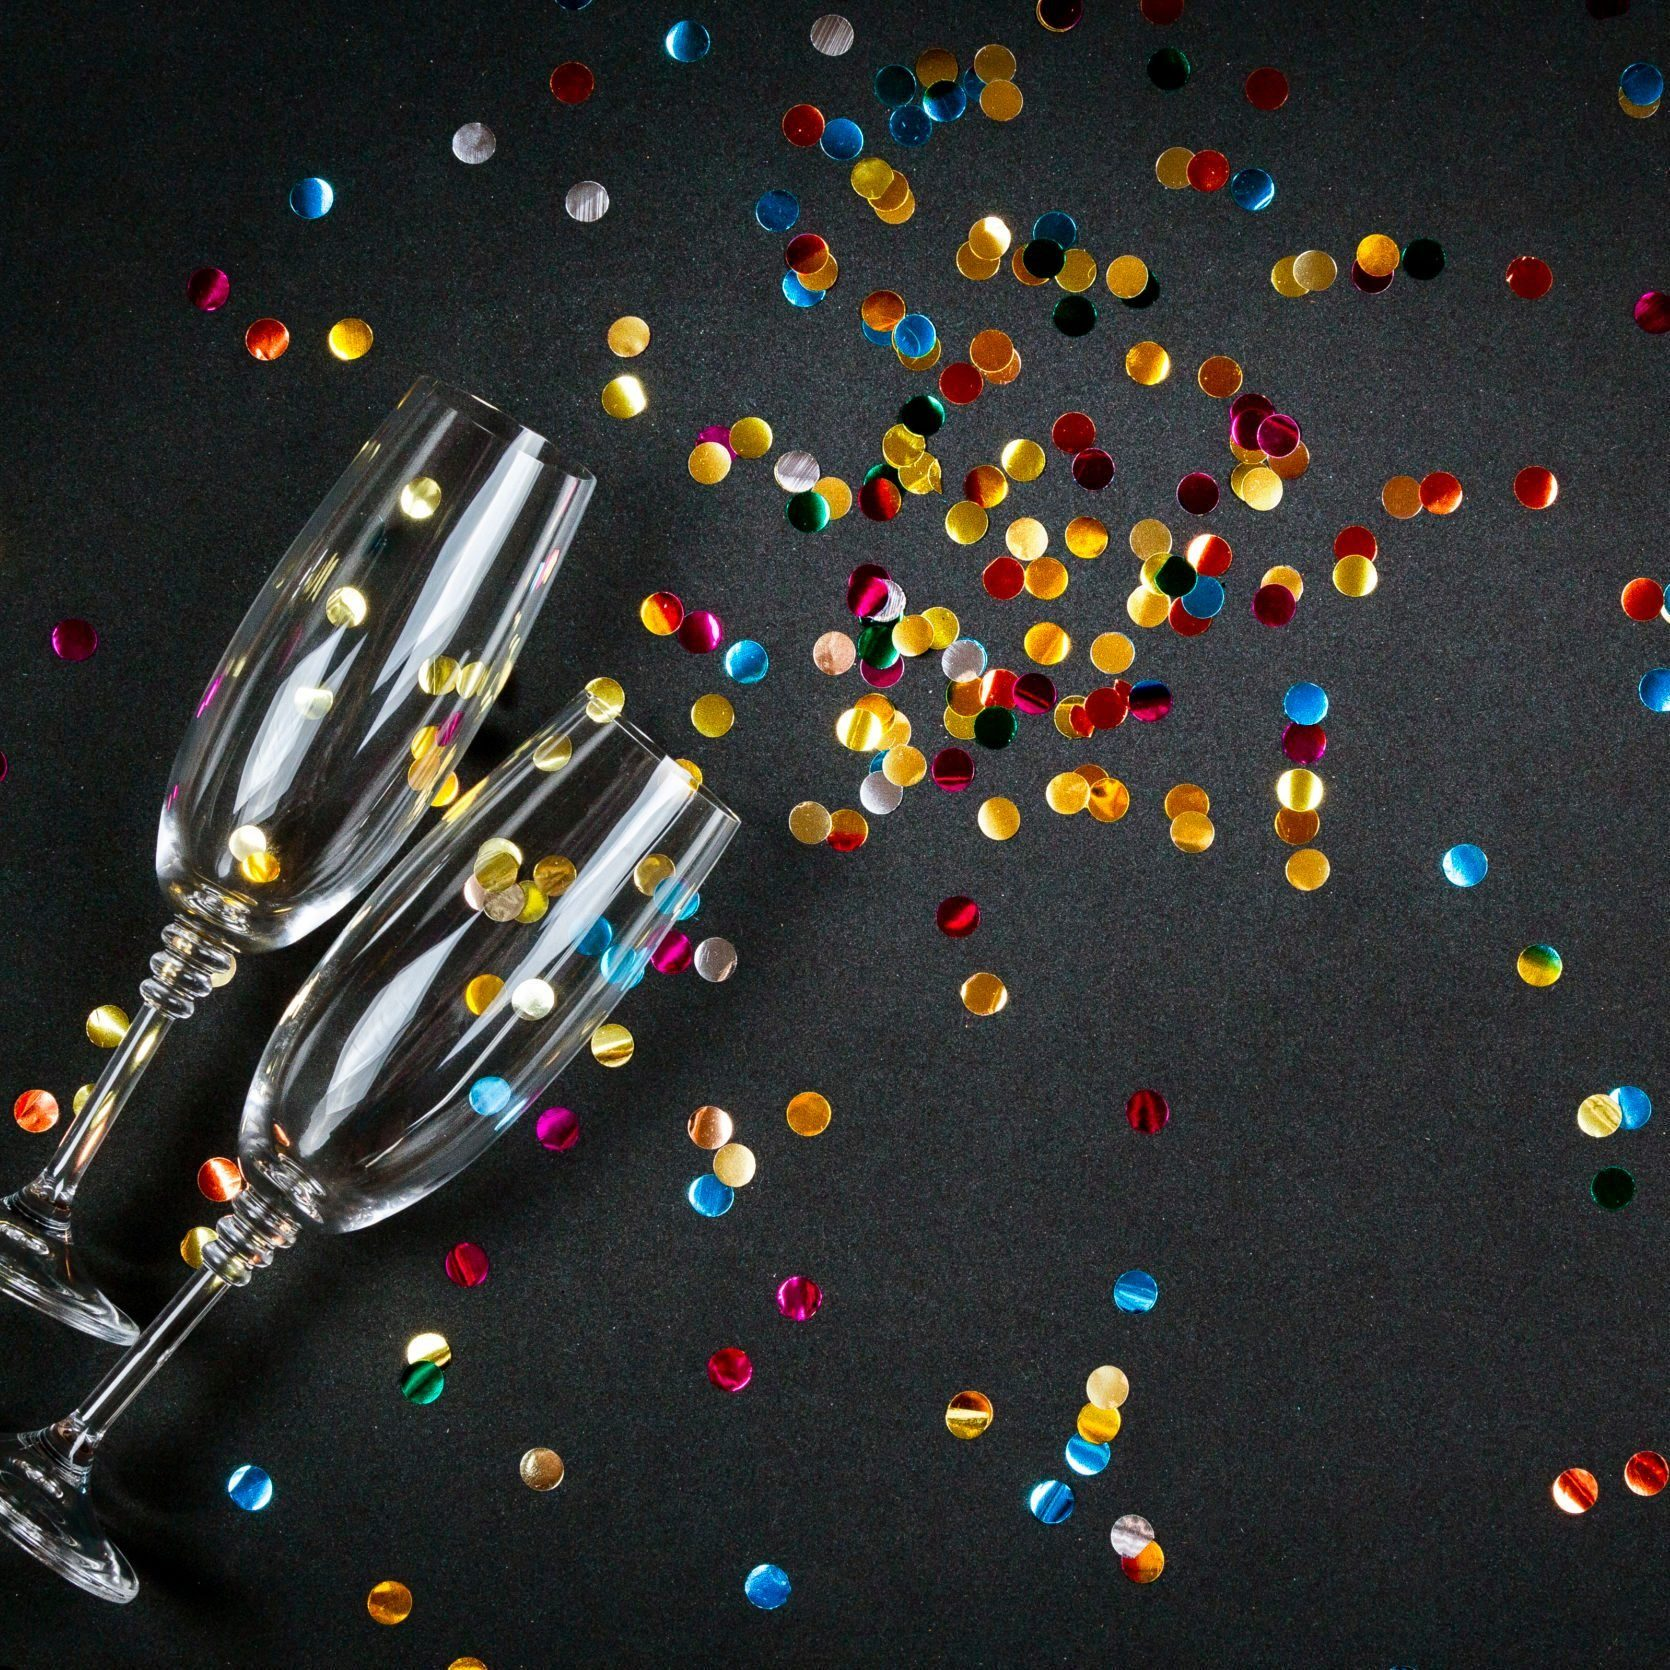 Two glasses of champagne wine with golden decoration of confetti on black background. Celebration composition for festive or party concept. Top view, flat lay, copy space